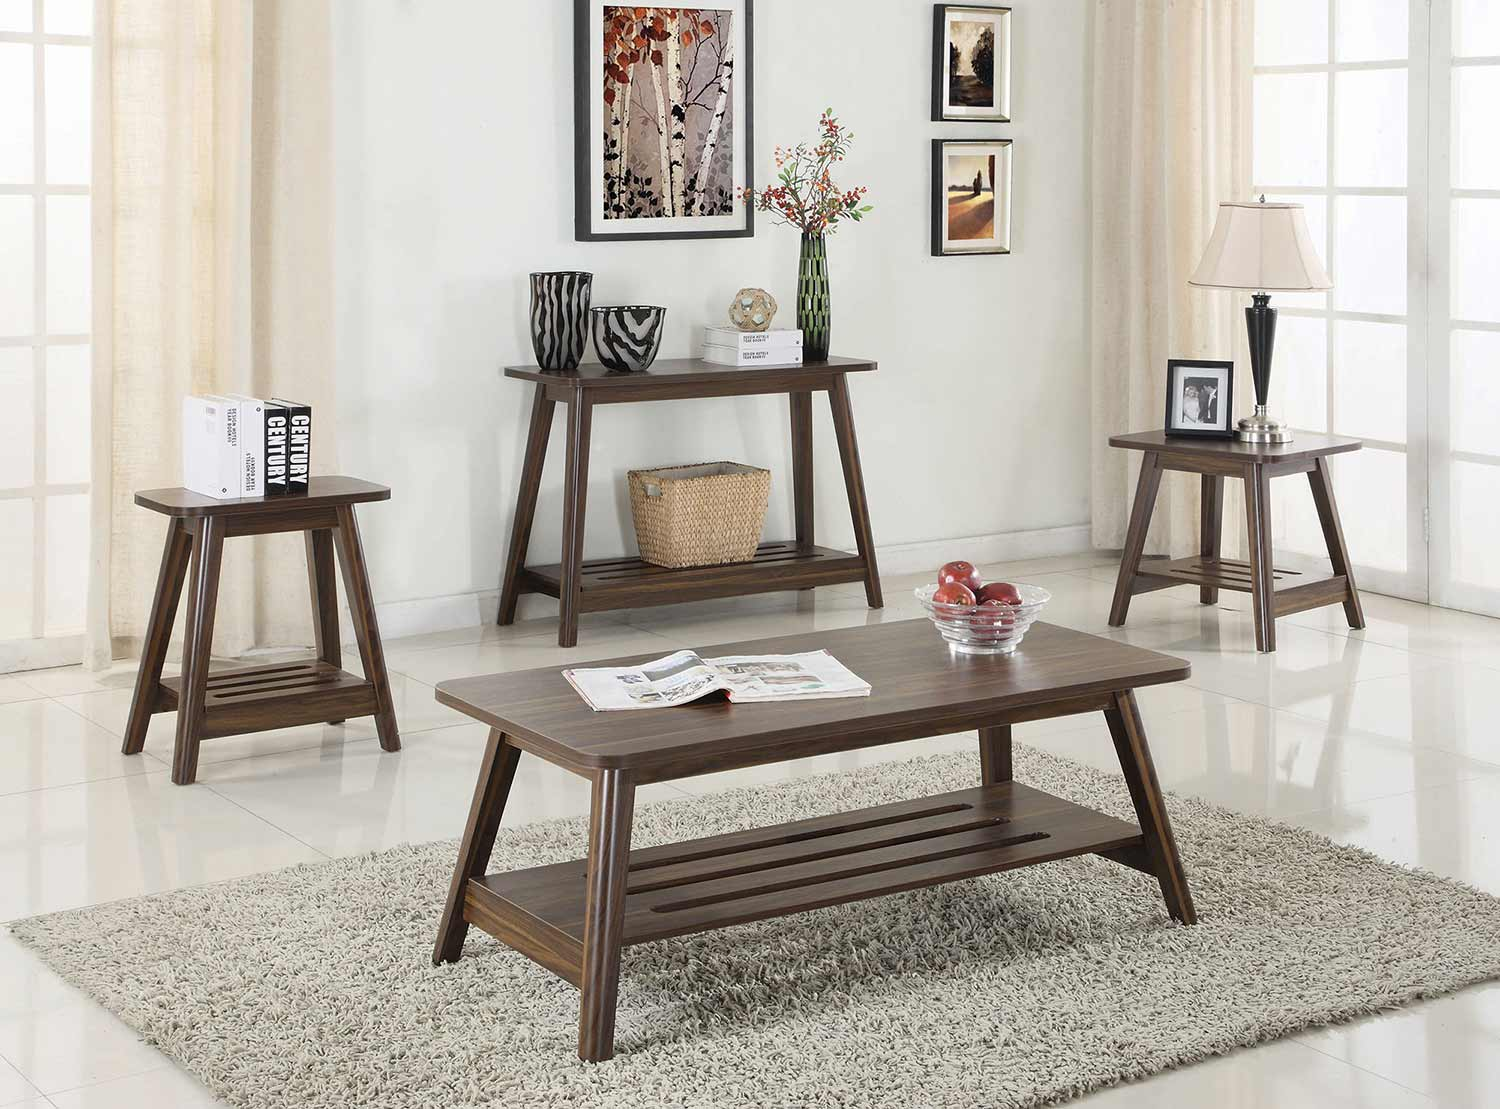 Coaster 720558 occasionalcoffee table set chestnut 720558 coaster 720558 occasionalcoffee table set chestnut geotapseo Image collections